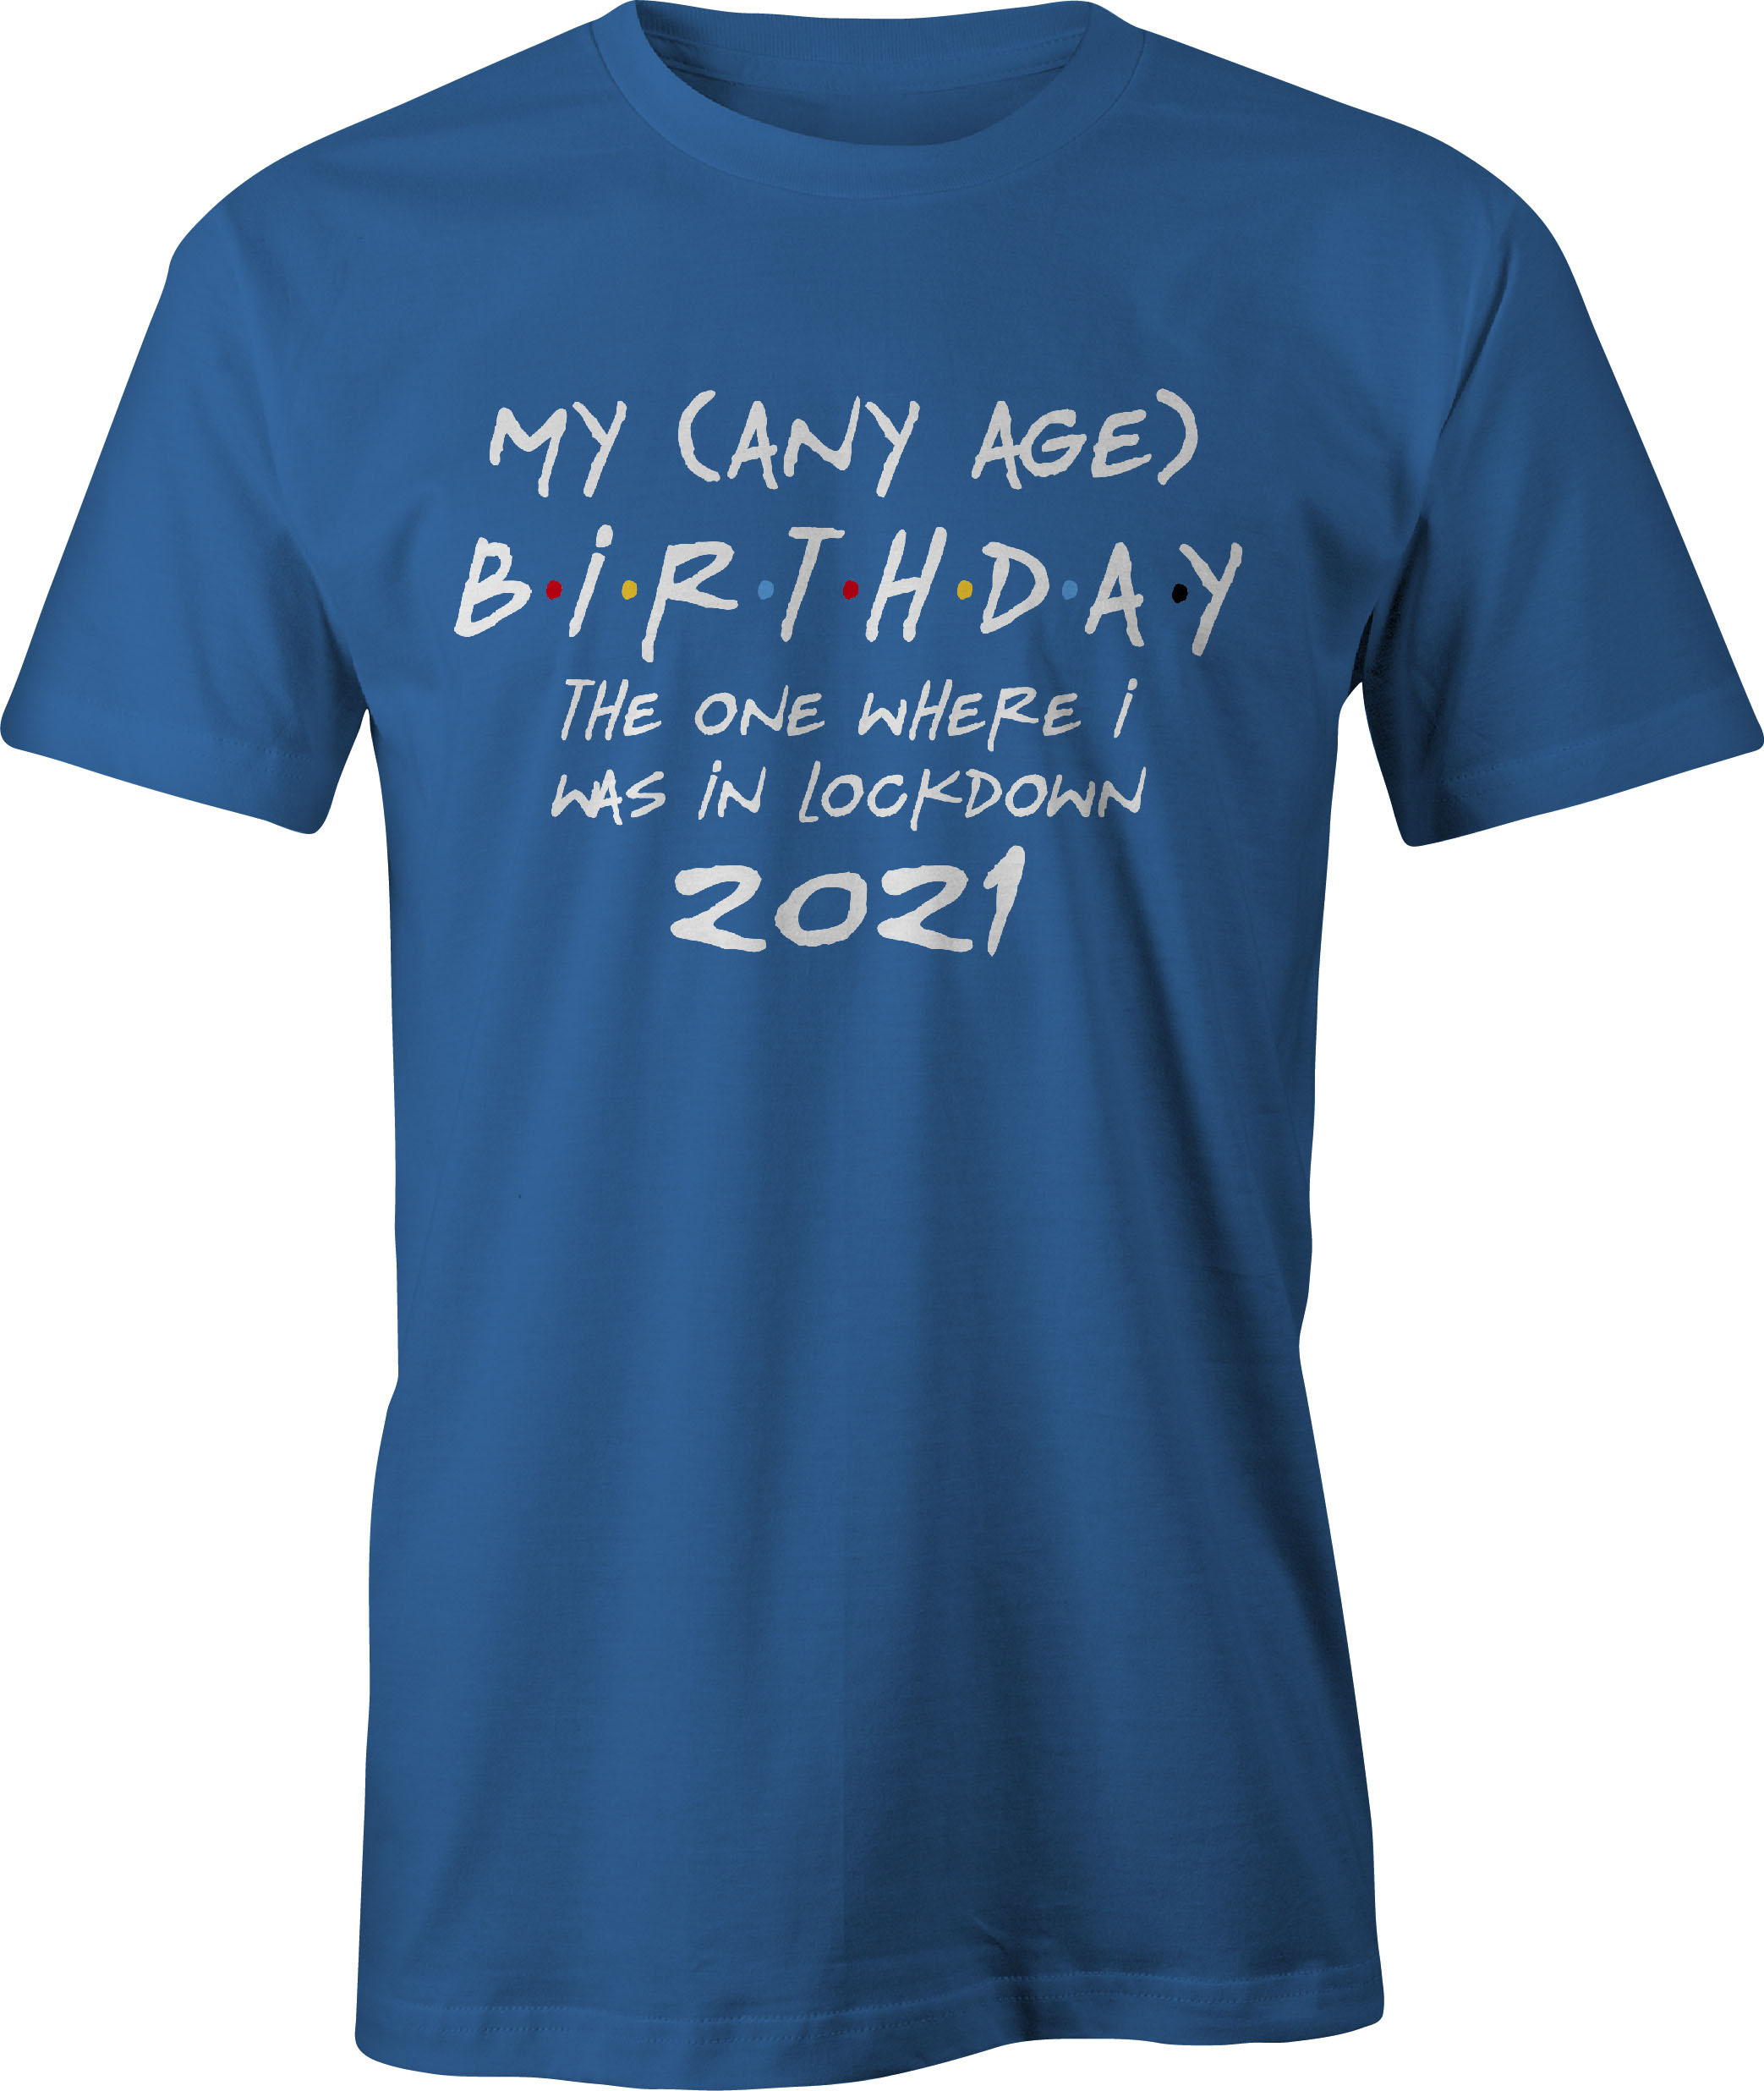 Friends style any age birthday in lockdown t shirt in rotyal blue